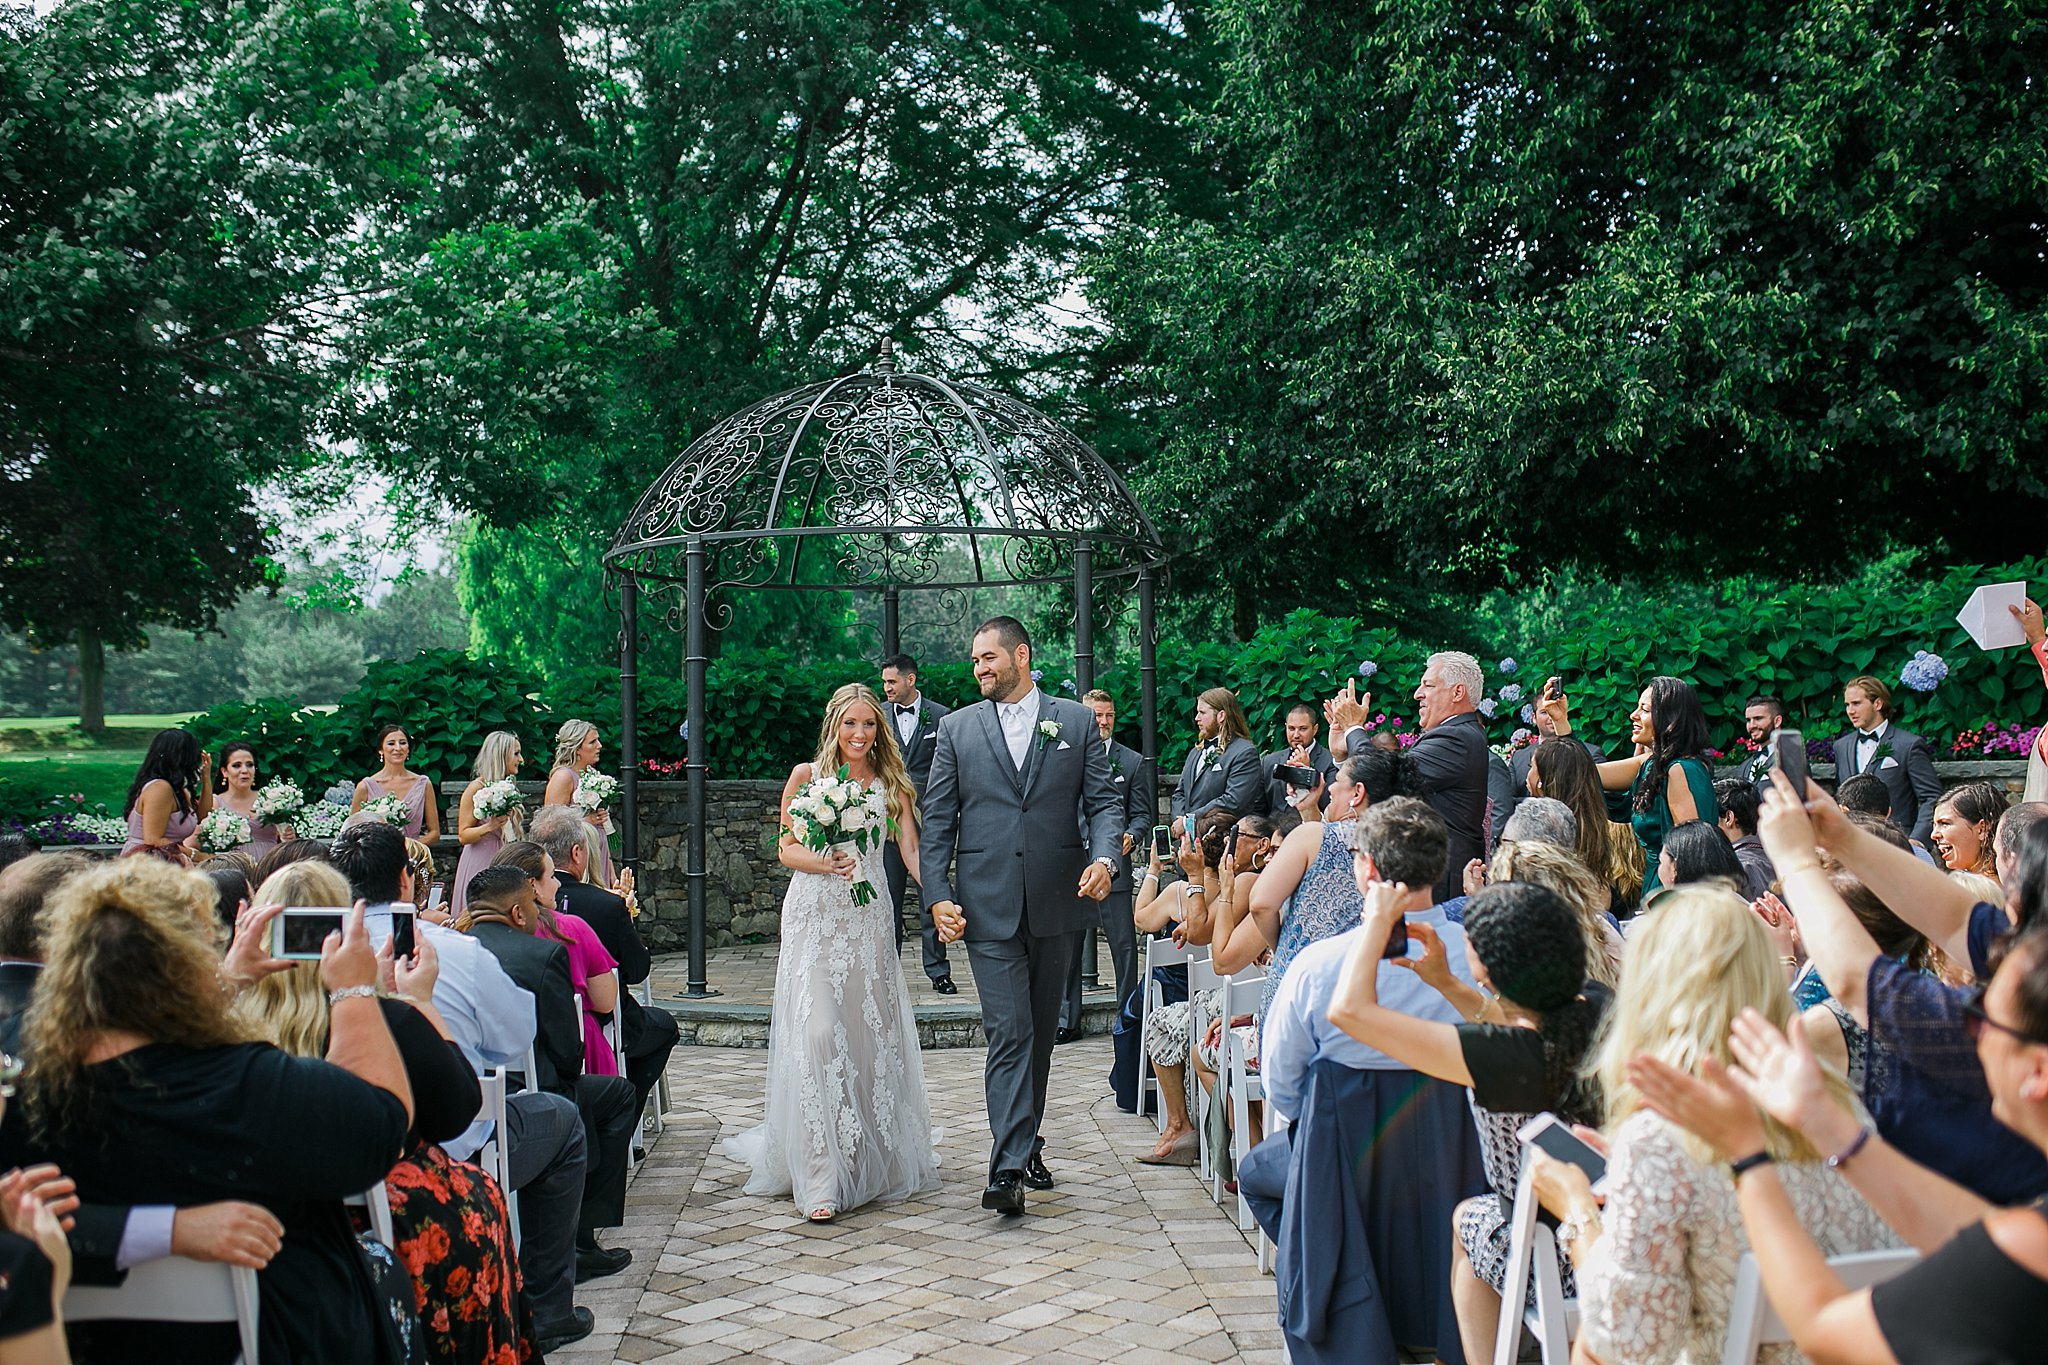 West Hills Country Club Wedding July Wedding Hudson Valley Wedding Hudson Valley Wedding Photographer Sweet Alice Photography75.jpg